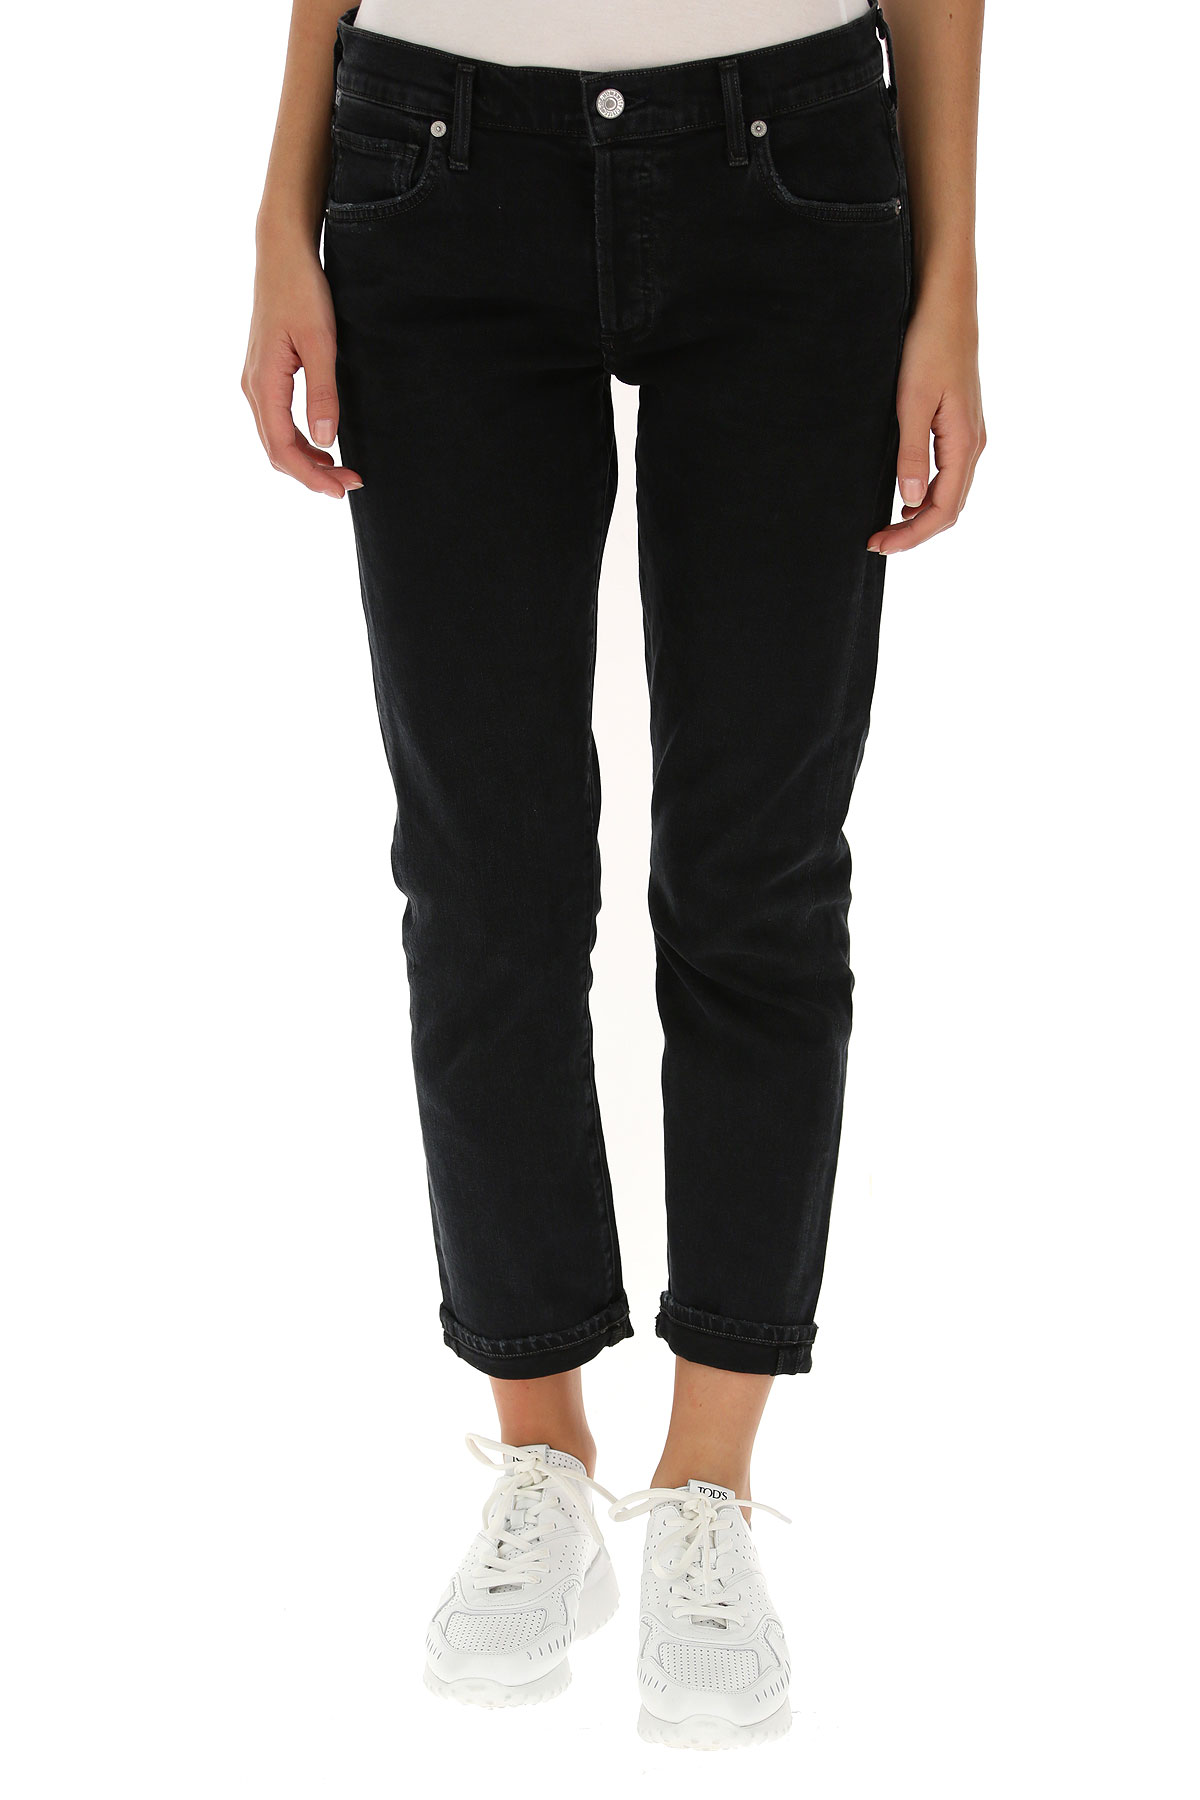 Citizens of Humanity Jeans On Sale, Dark Midnight Blue, Cotton, 2019, 25 27 28